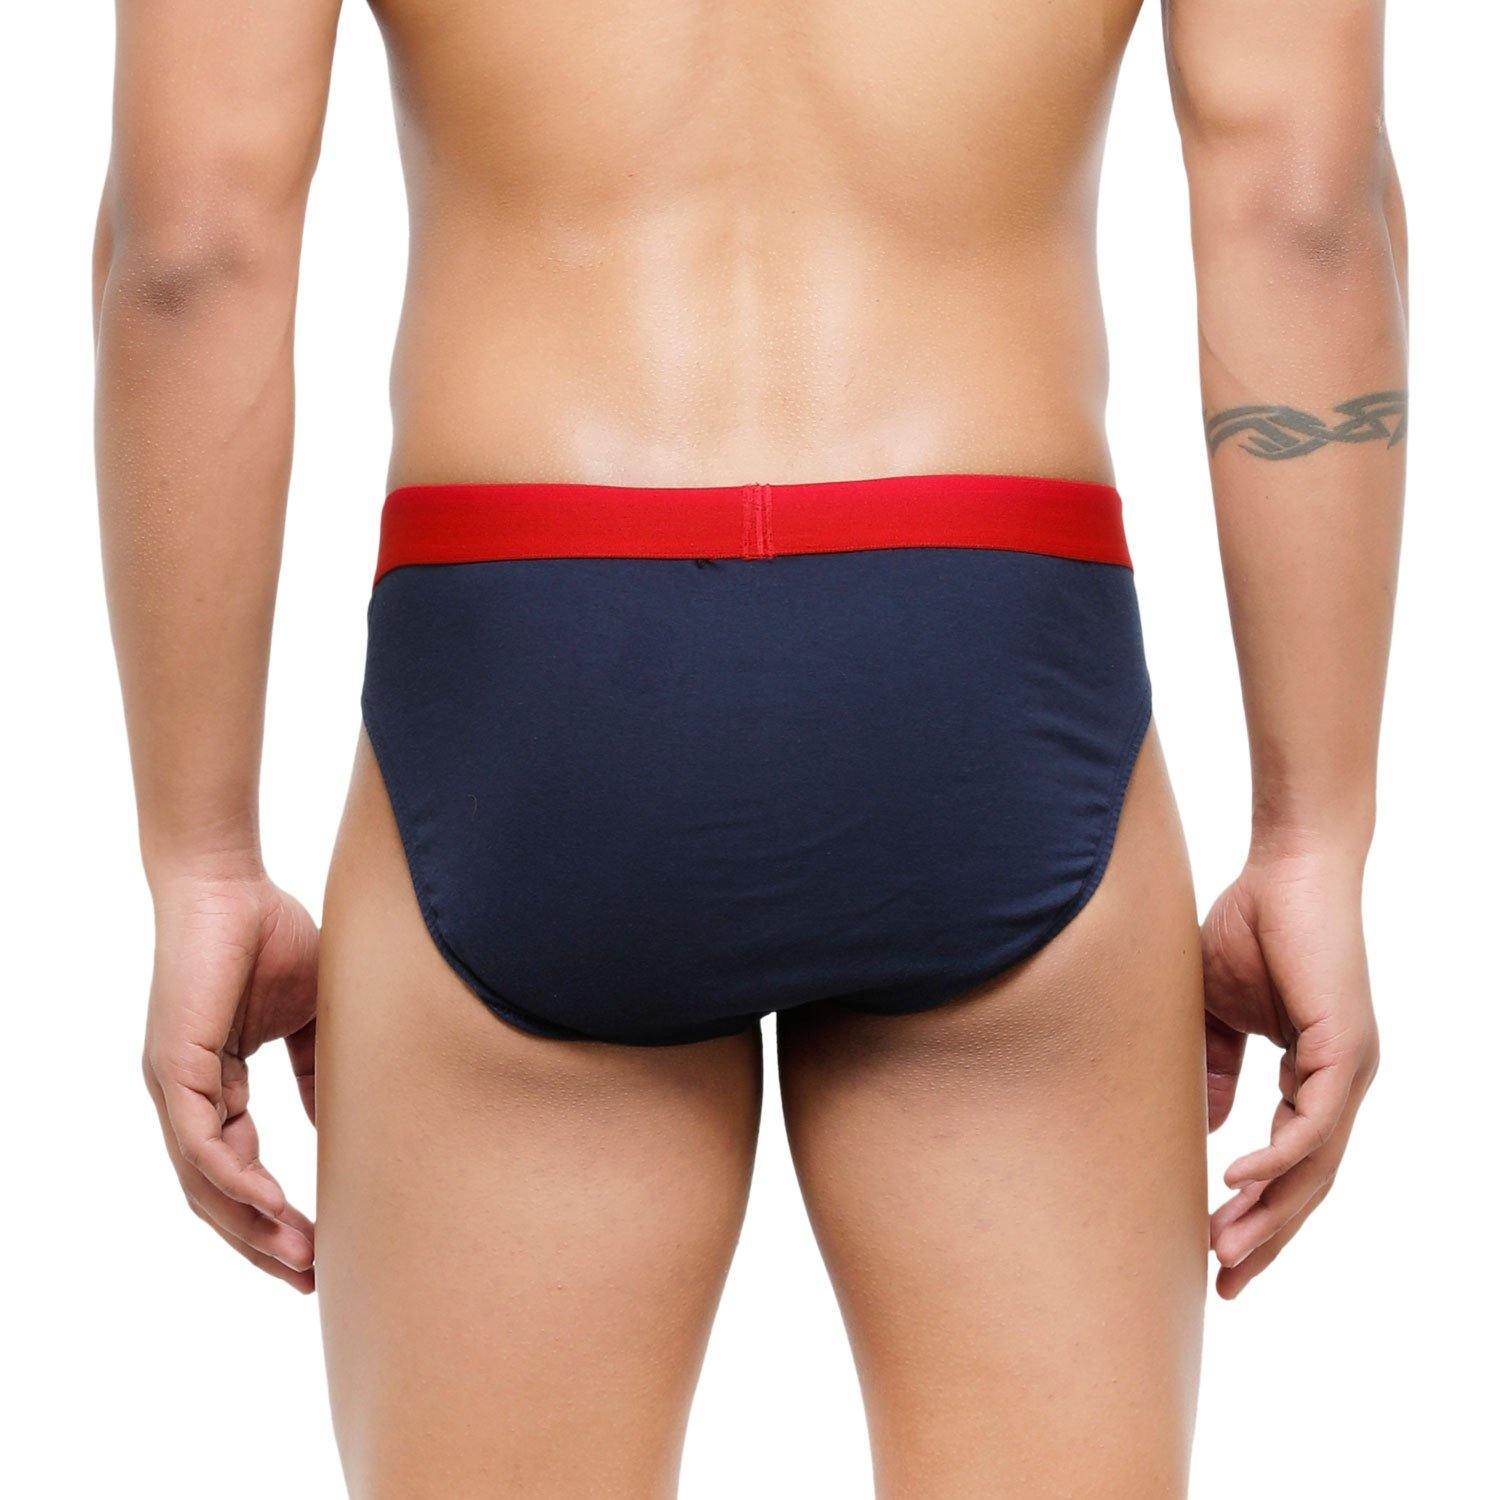 Men's Low-Rise Premia Cotton Briefs With Elasticated Band - Navy